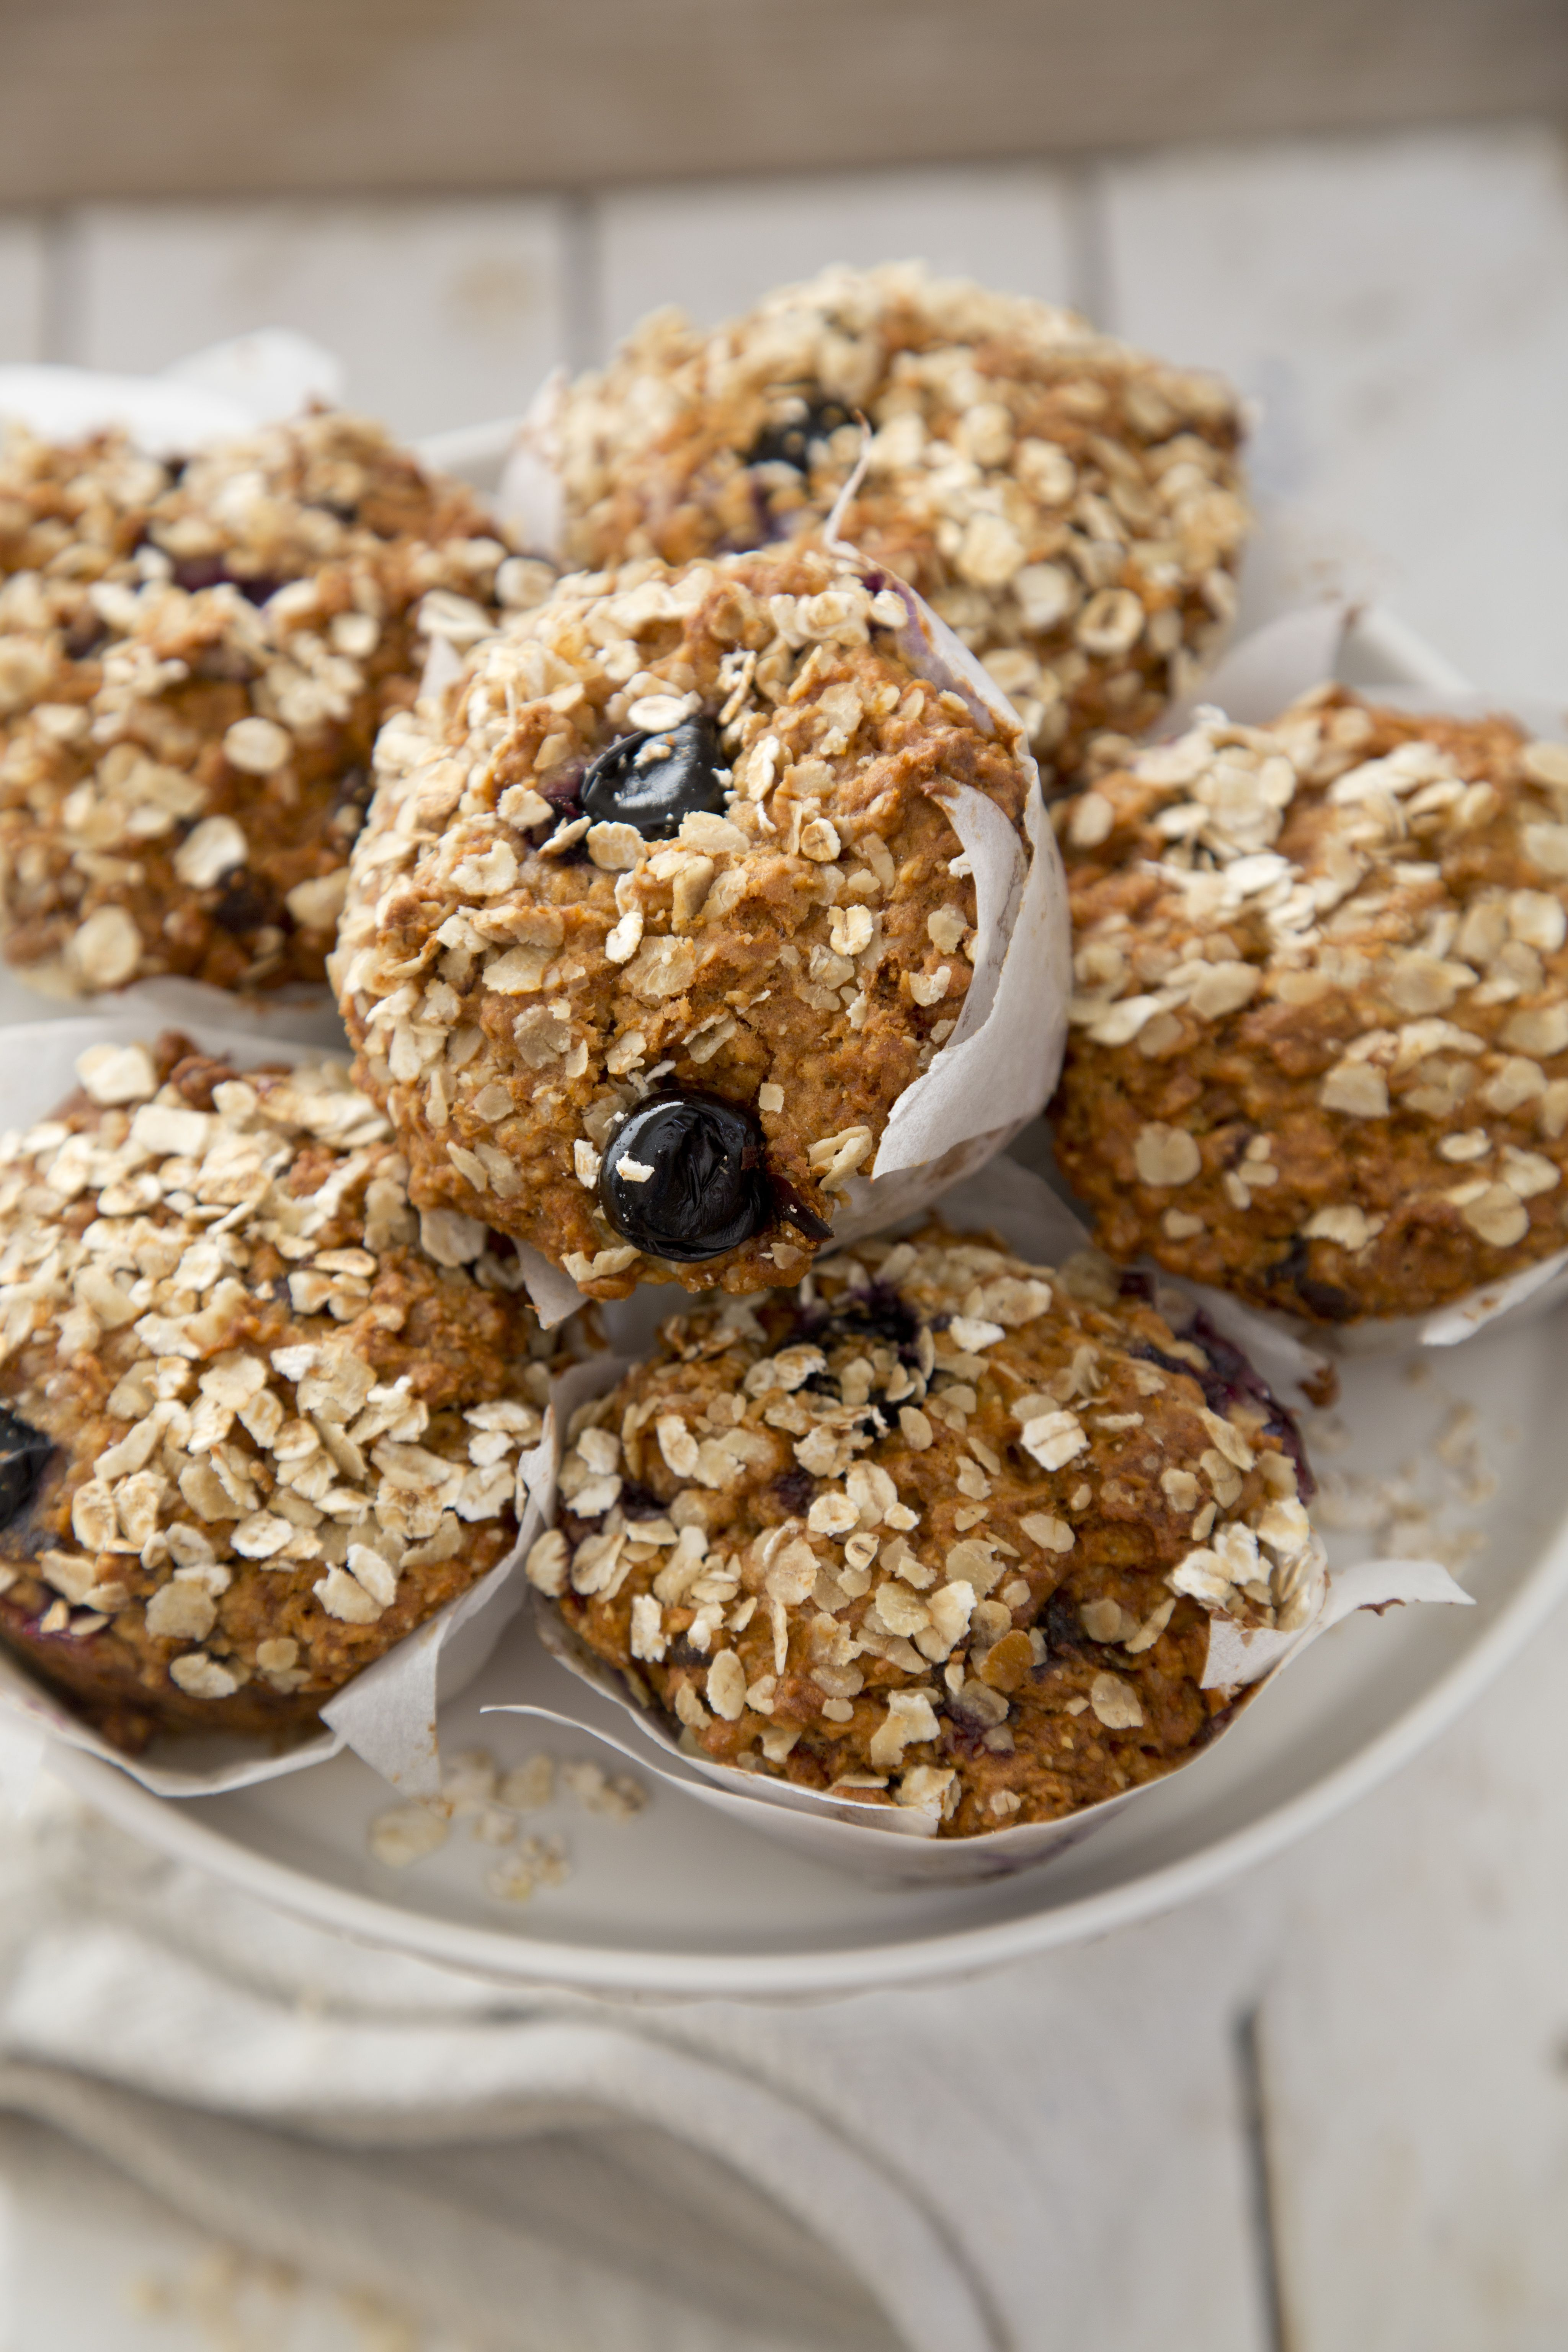 2. blueberry oat muffins photo 2